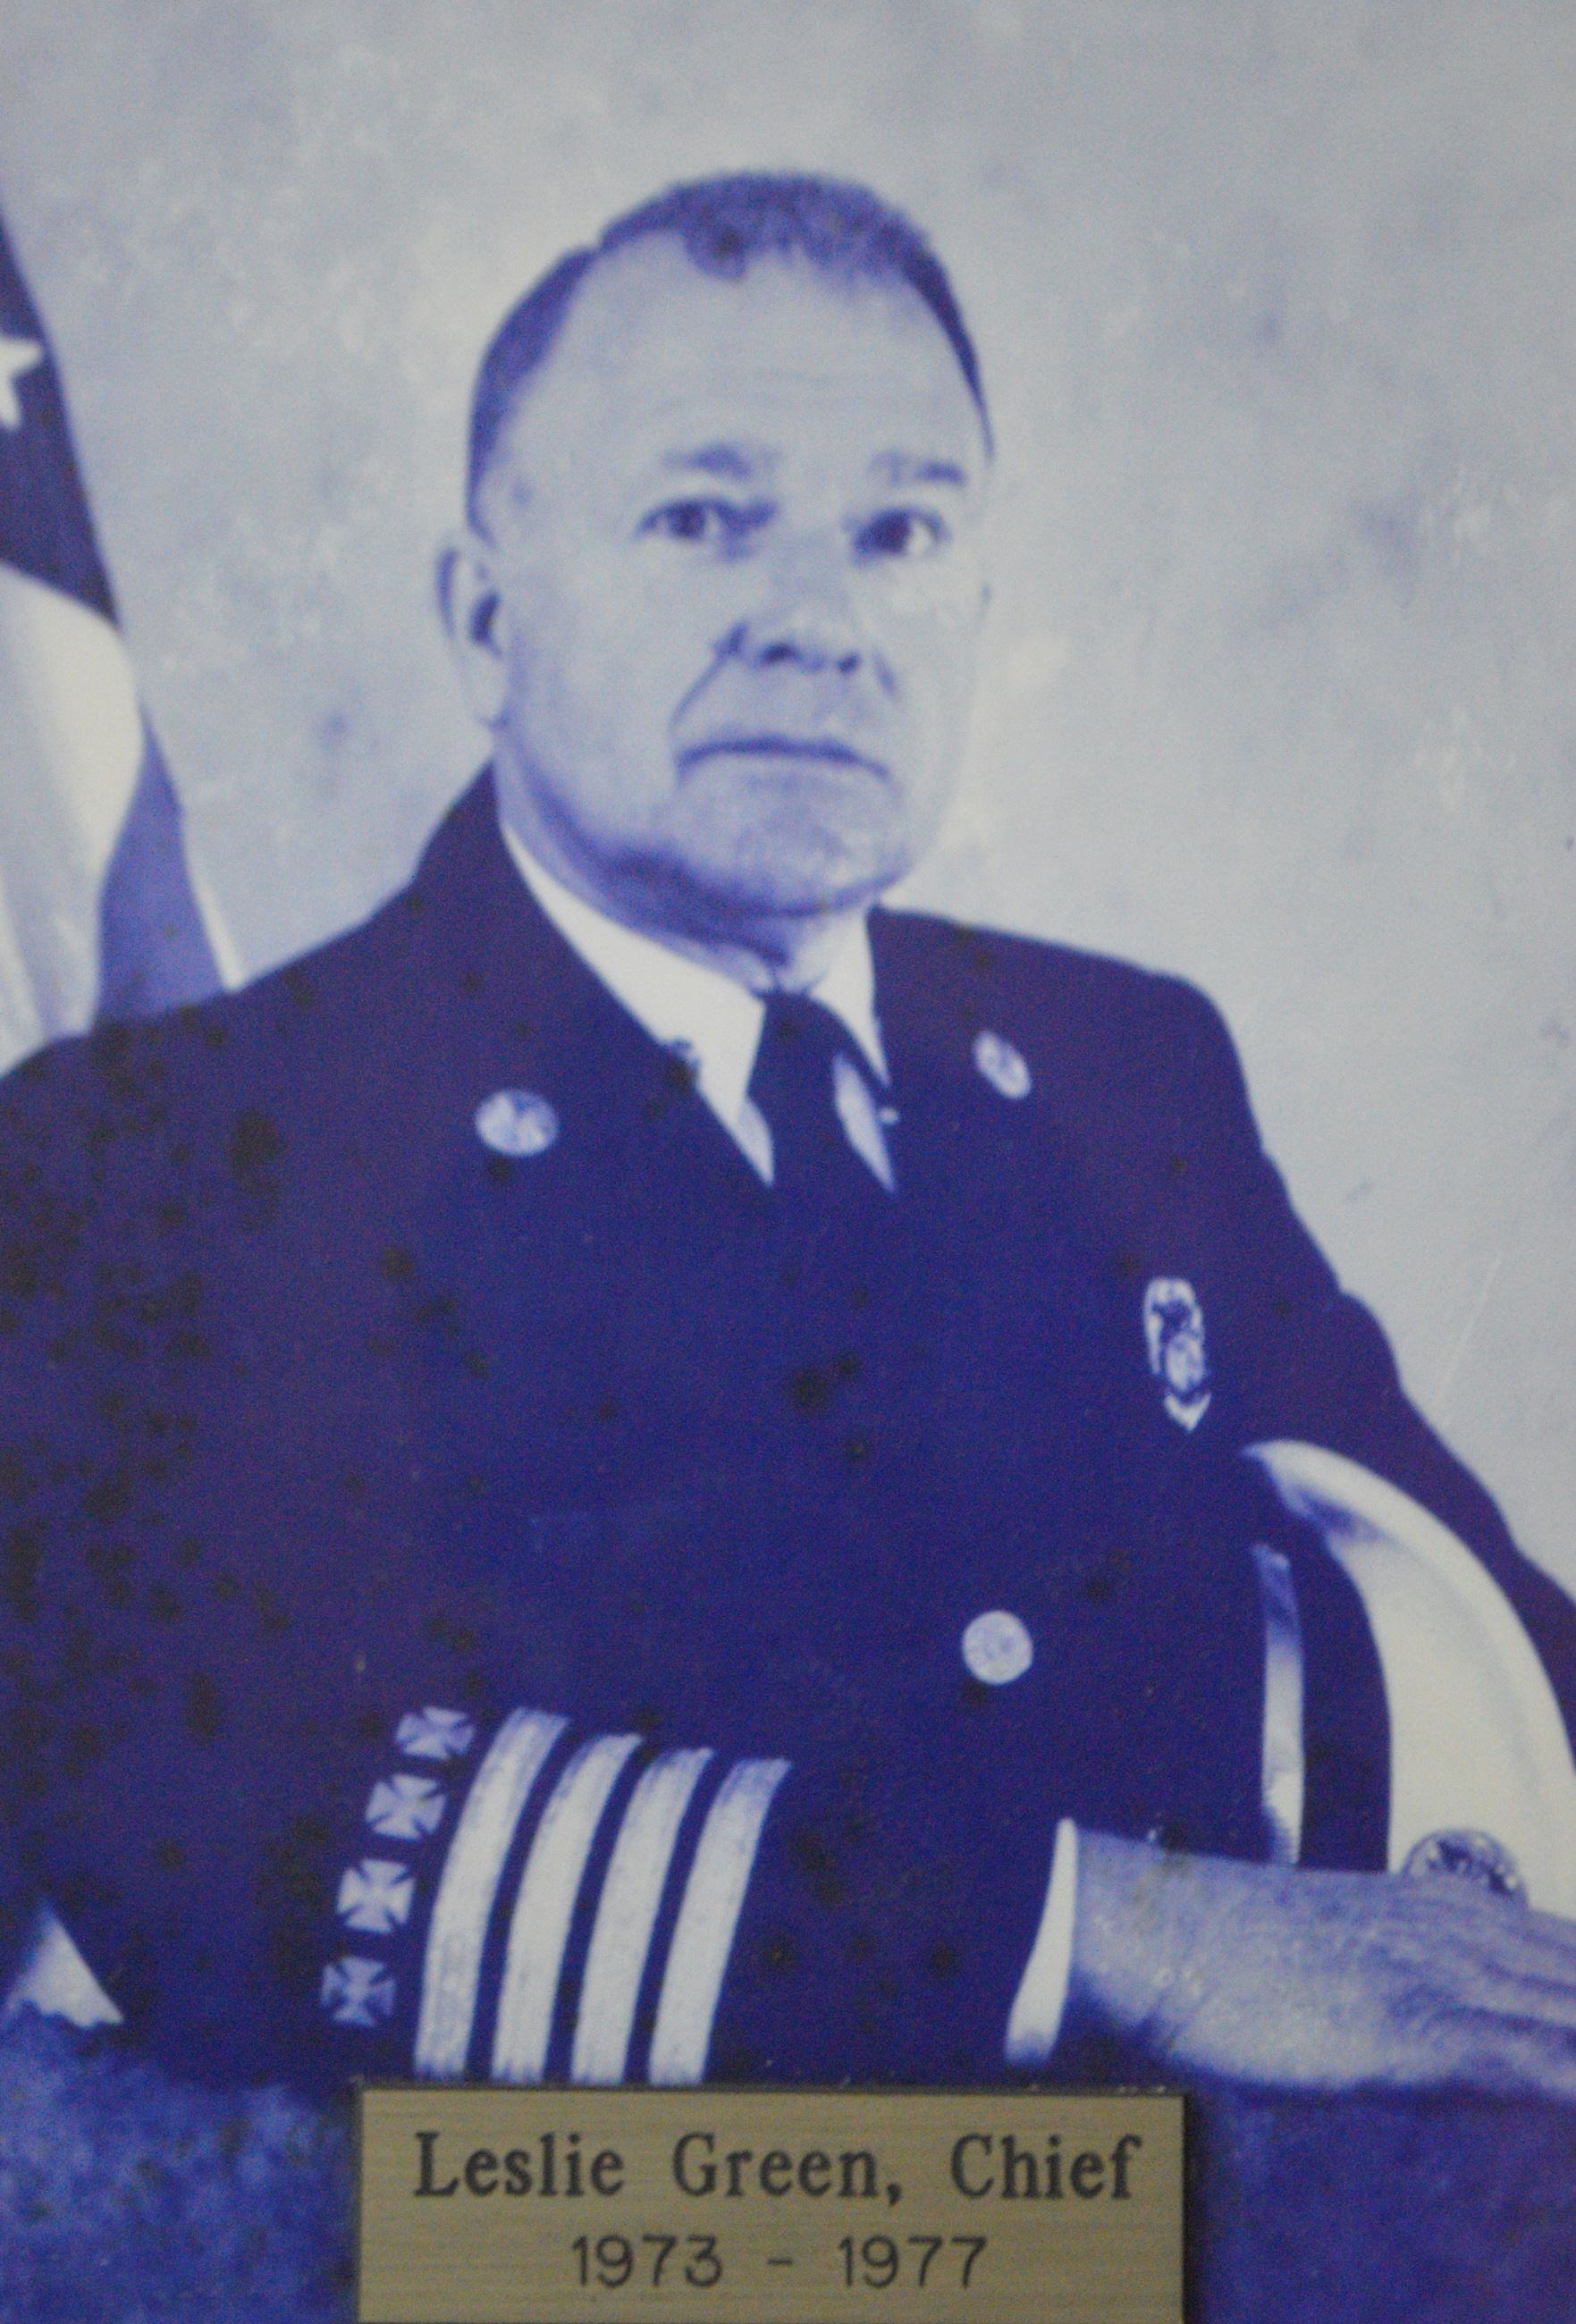 The Late Fire Chief Leslie Green Served from 1973 - 1977